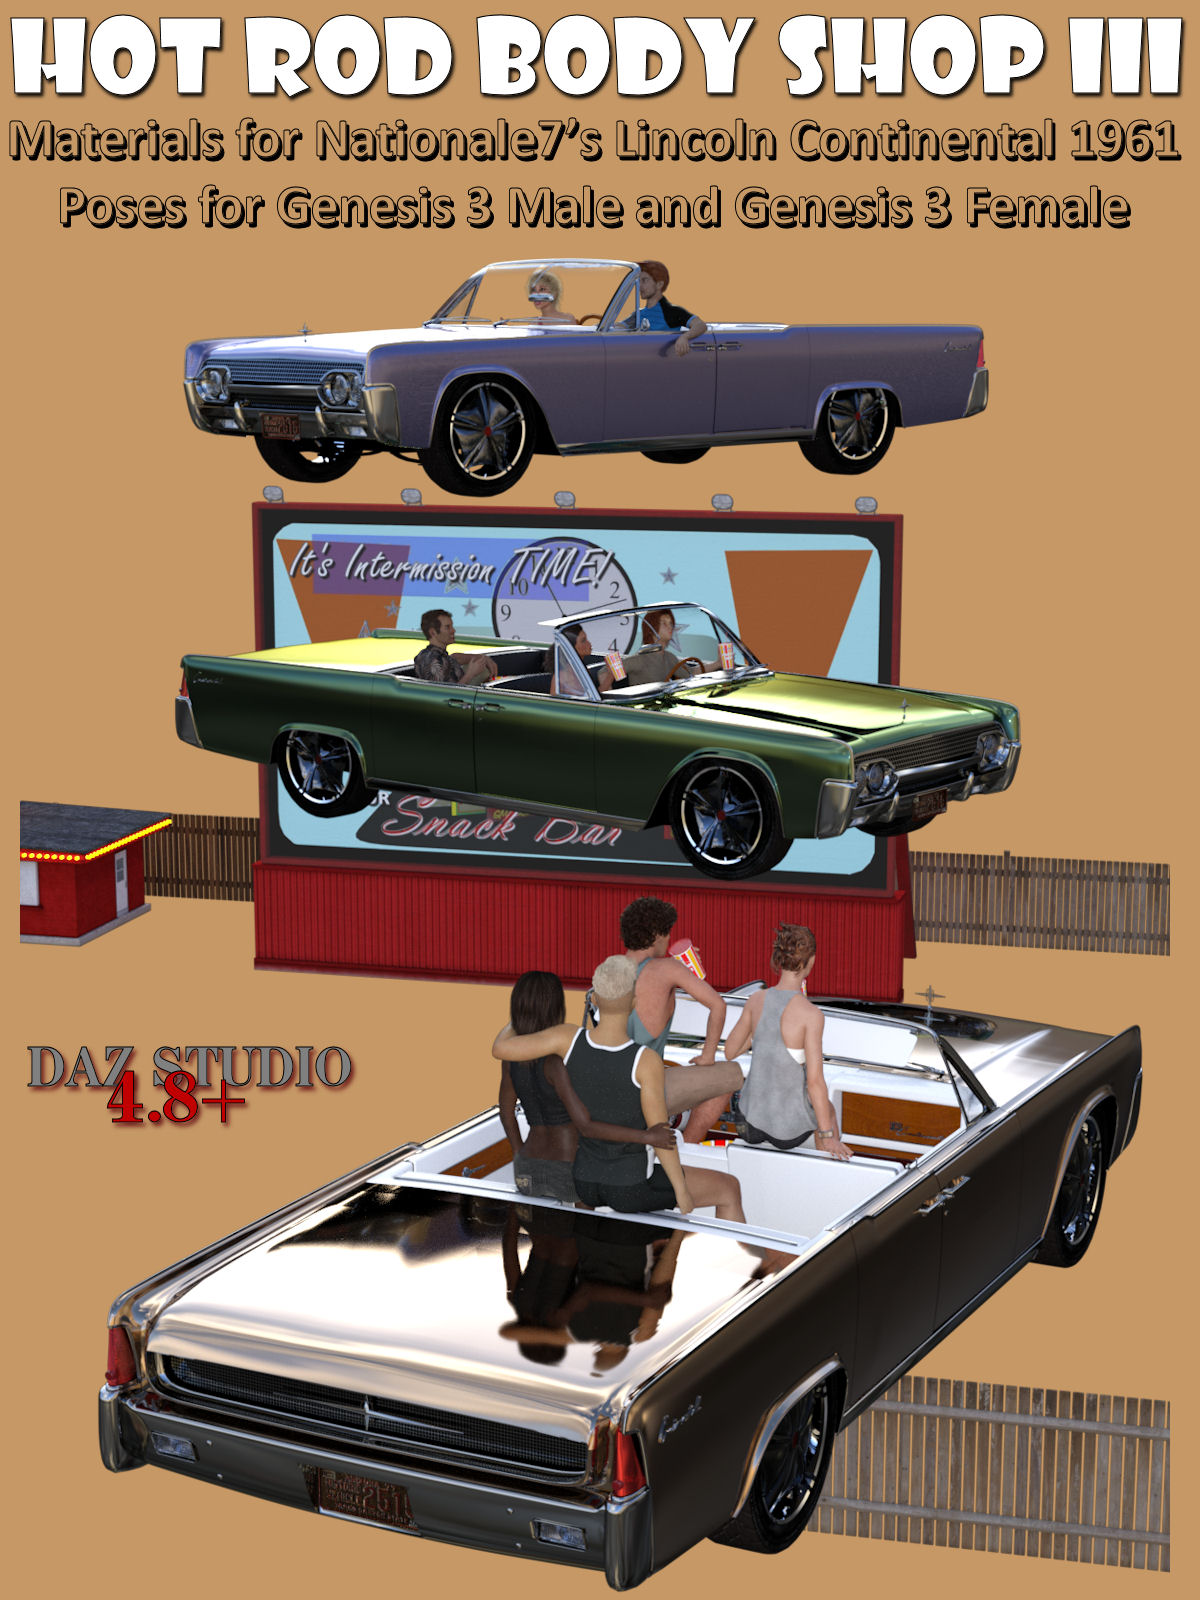 Hot Rod Body Shop Series 3 for Nationale7 Lincoln Continental 1961, G3M and G3F